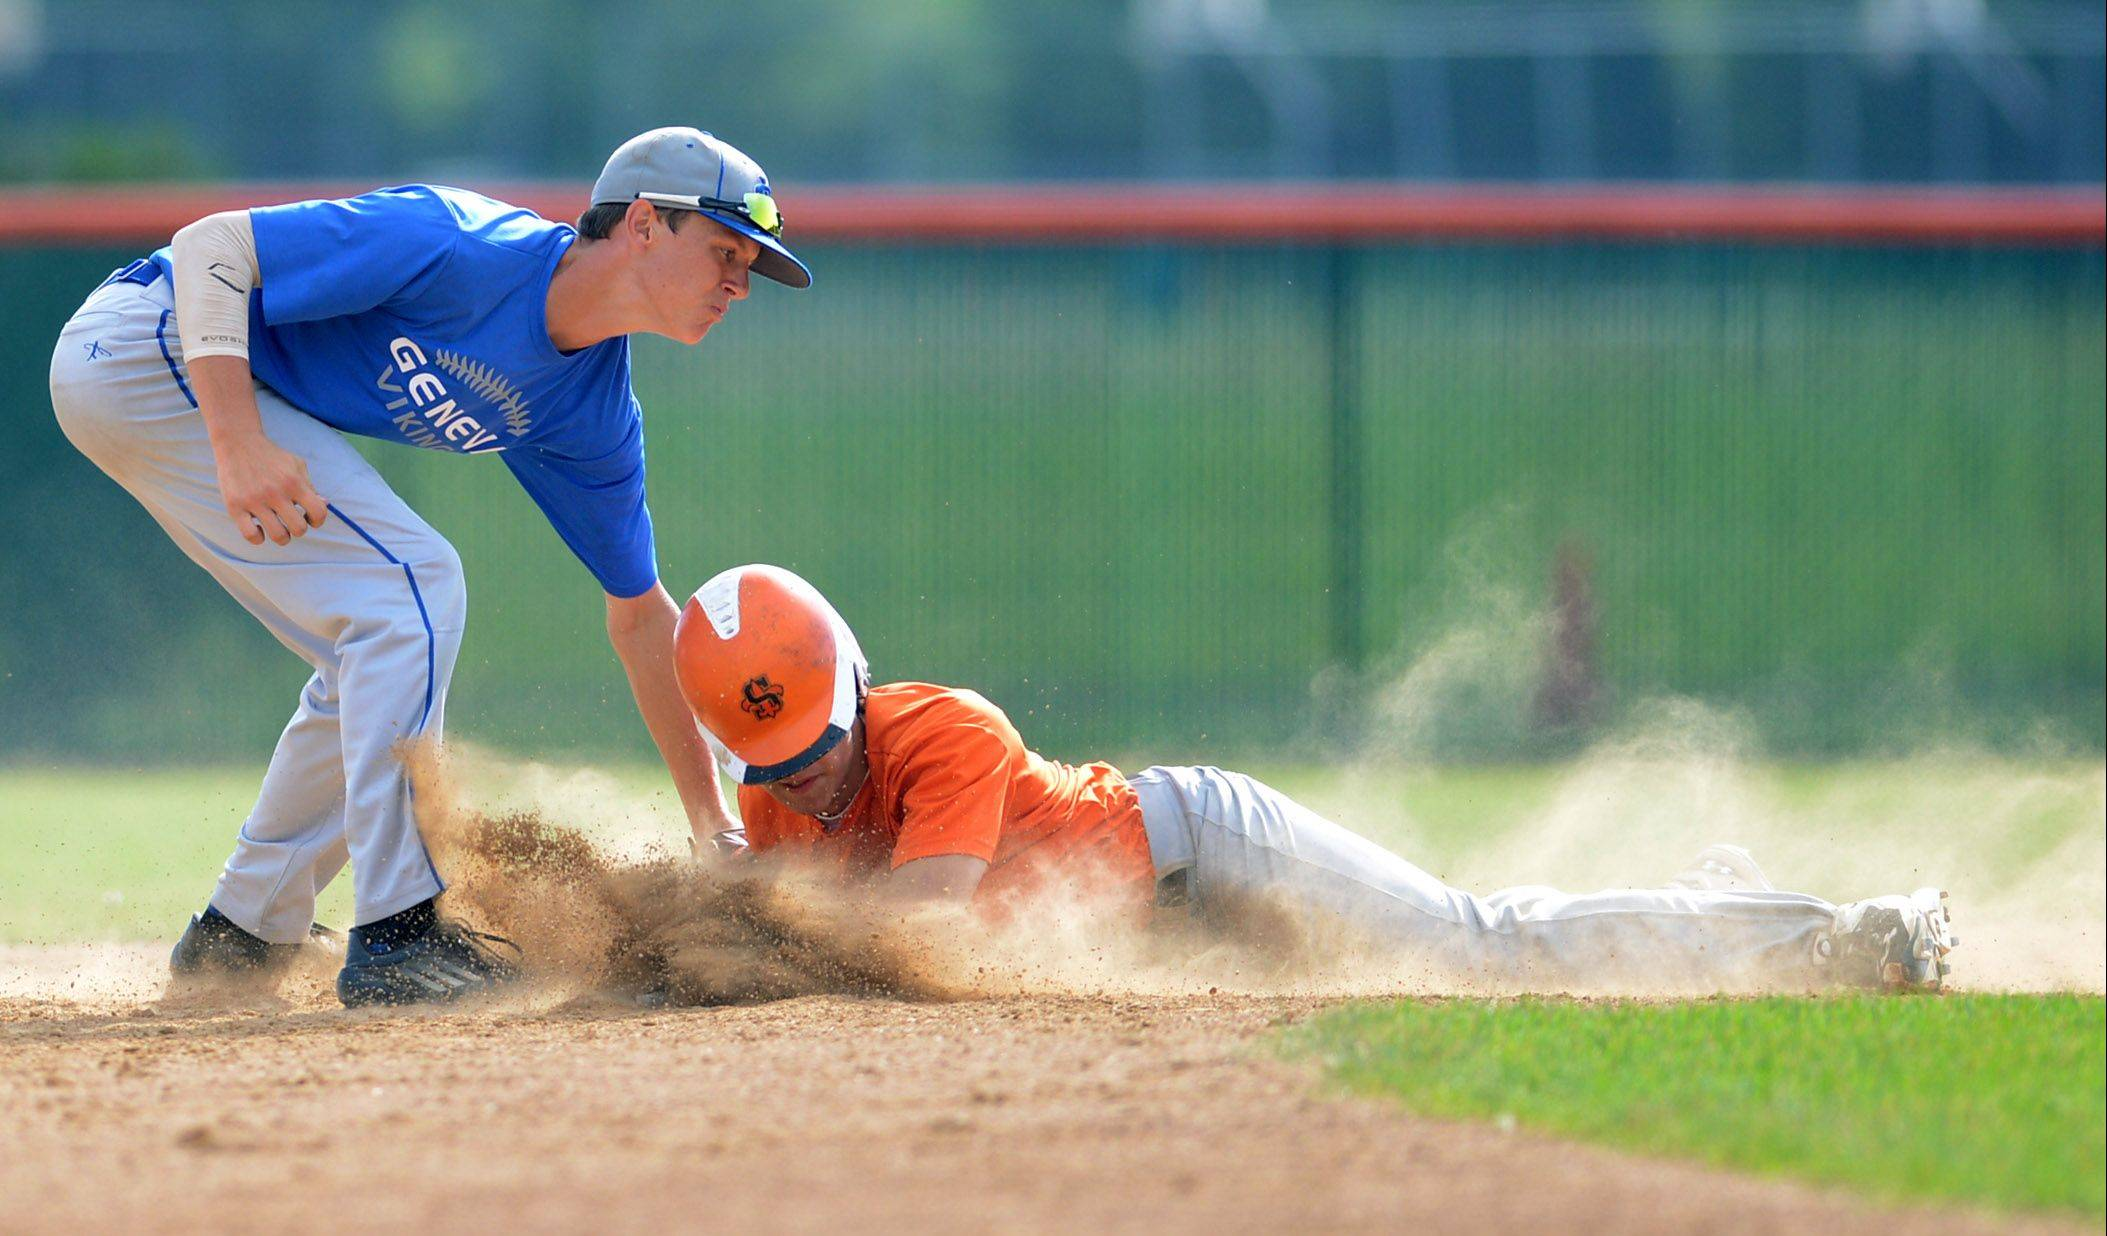 St. Charles East's Austin Regelbrugge slides safely into second in front of the tag of Geneva's Jack Wassel, starting off a 4-run third inning during Thursday's game in St. Charles.